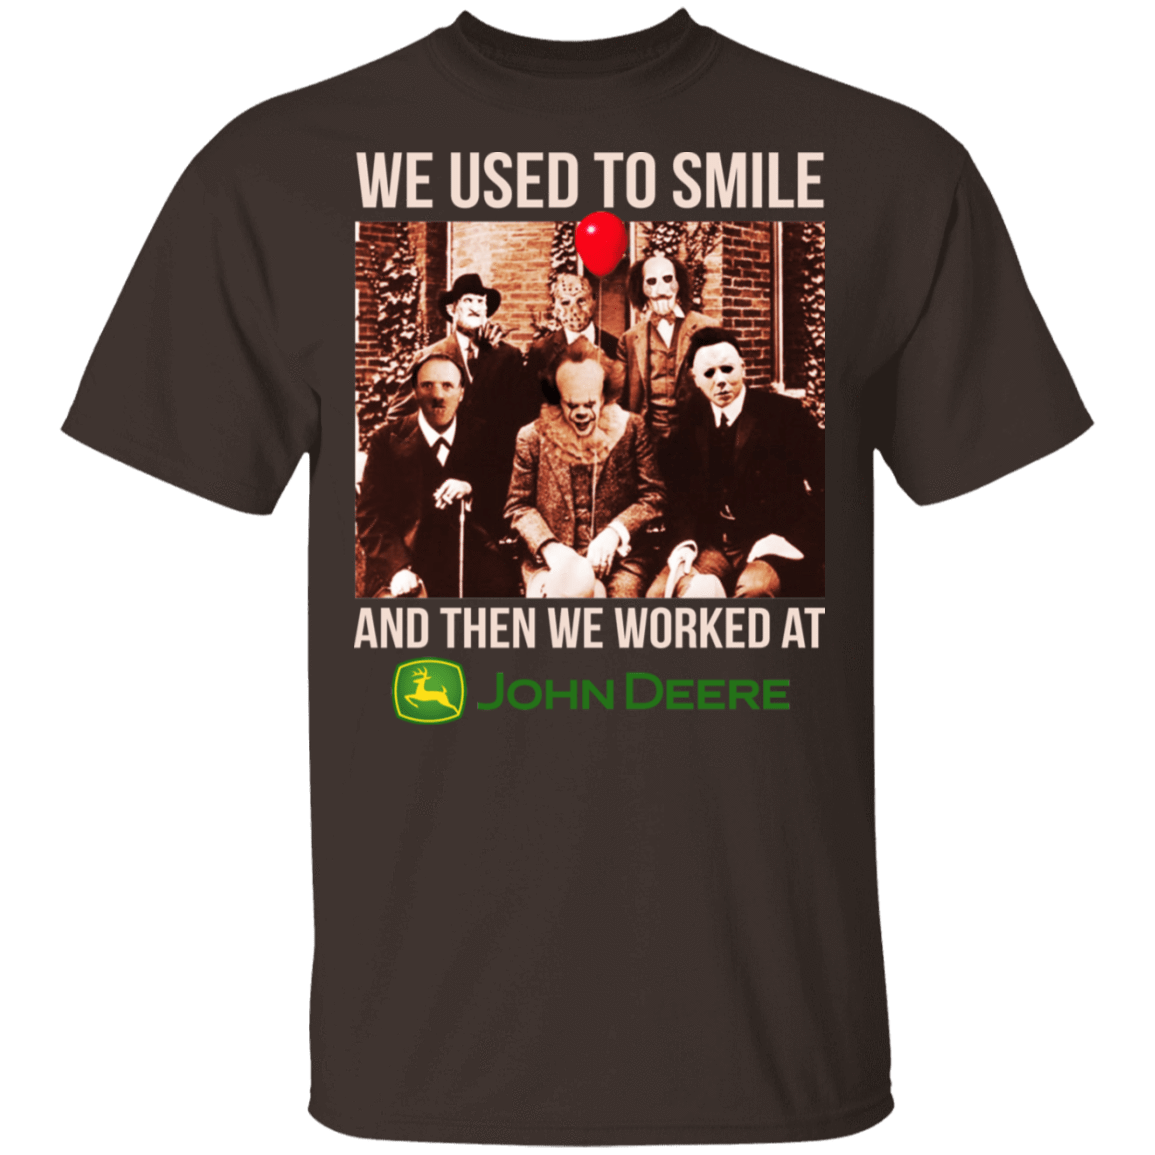 We Used To Smile And Then We Worked At John Deere Halloween T-Shirts, Hoodies, Tank 22-2283-79712487-12087 - Tee Ript